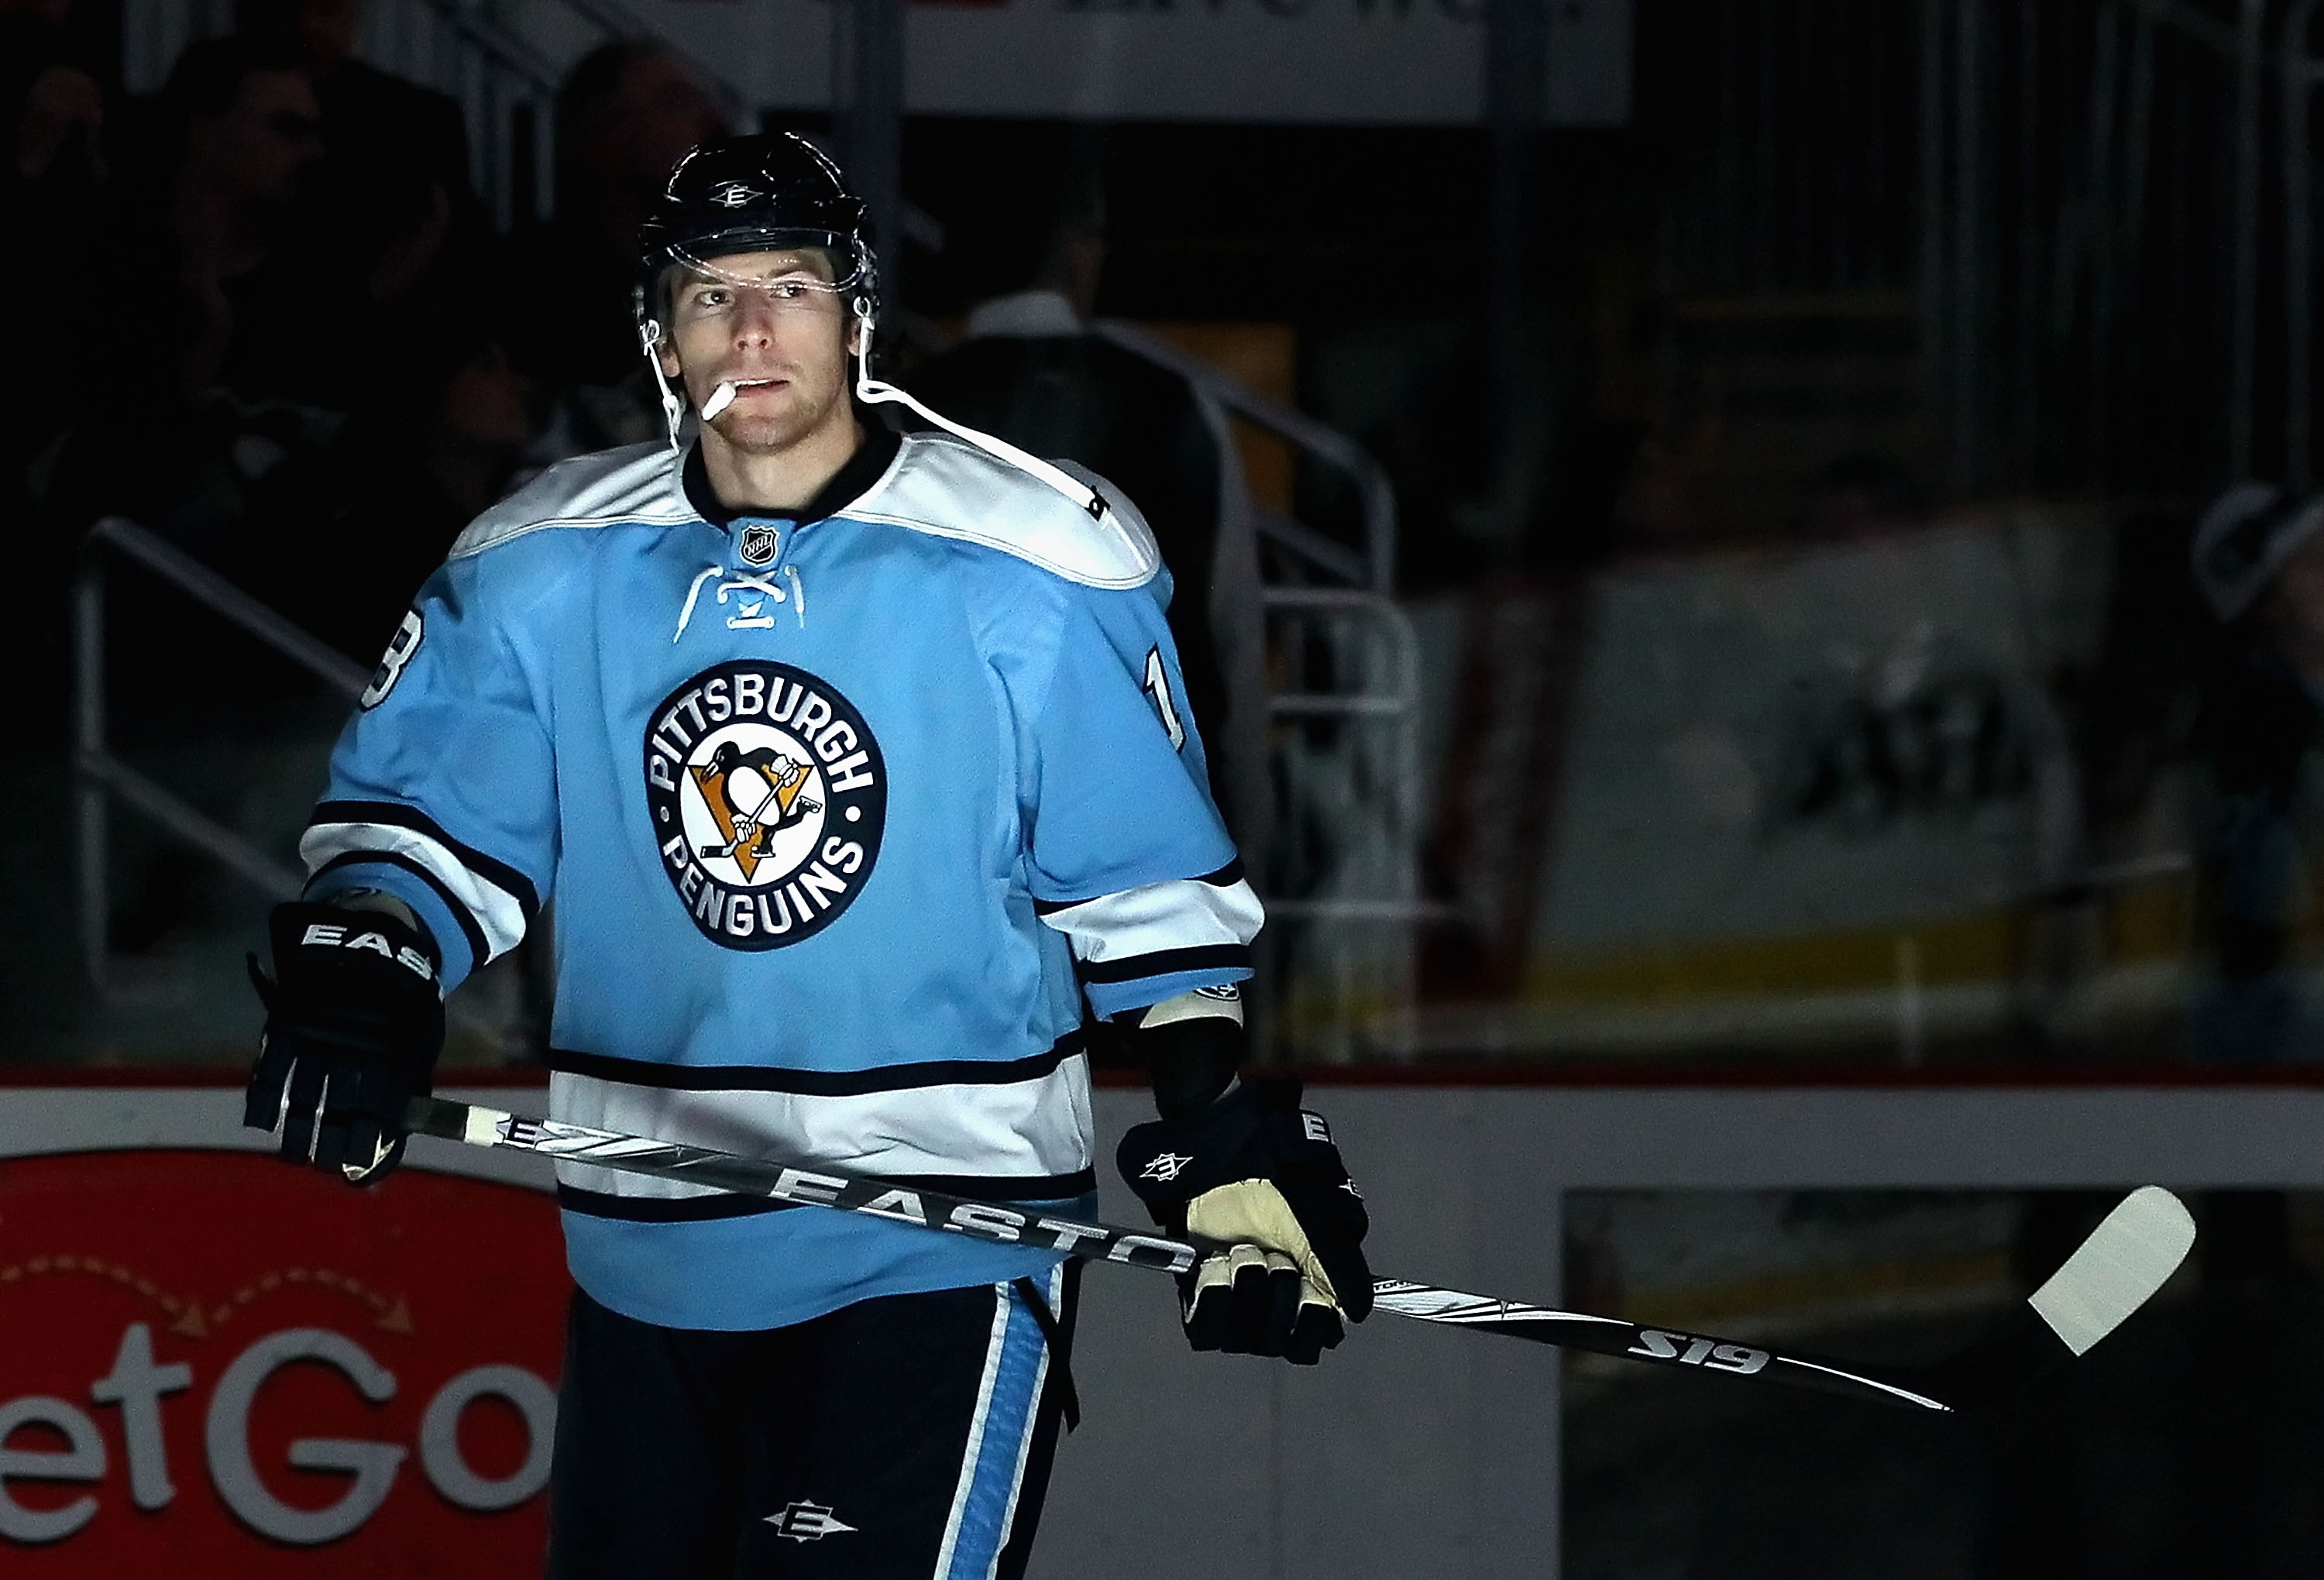 PITTSBURGH, PA - FEBRUARY 23:  James Neal #18 of the Pittsburgh Penguins skates on the ice before the start of the first period of the NHL game against the San Jose Sharks at Consol Energy Center on February 23, 2011 in Pittsburgh, Pennsylvania.  (Photo b